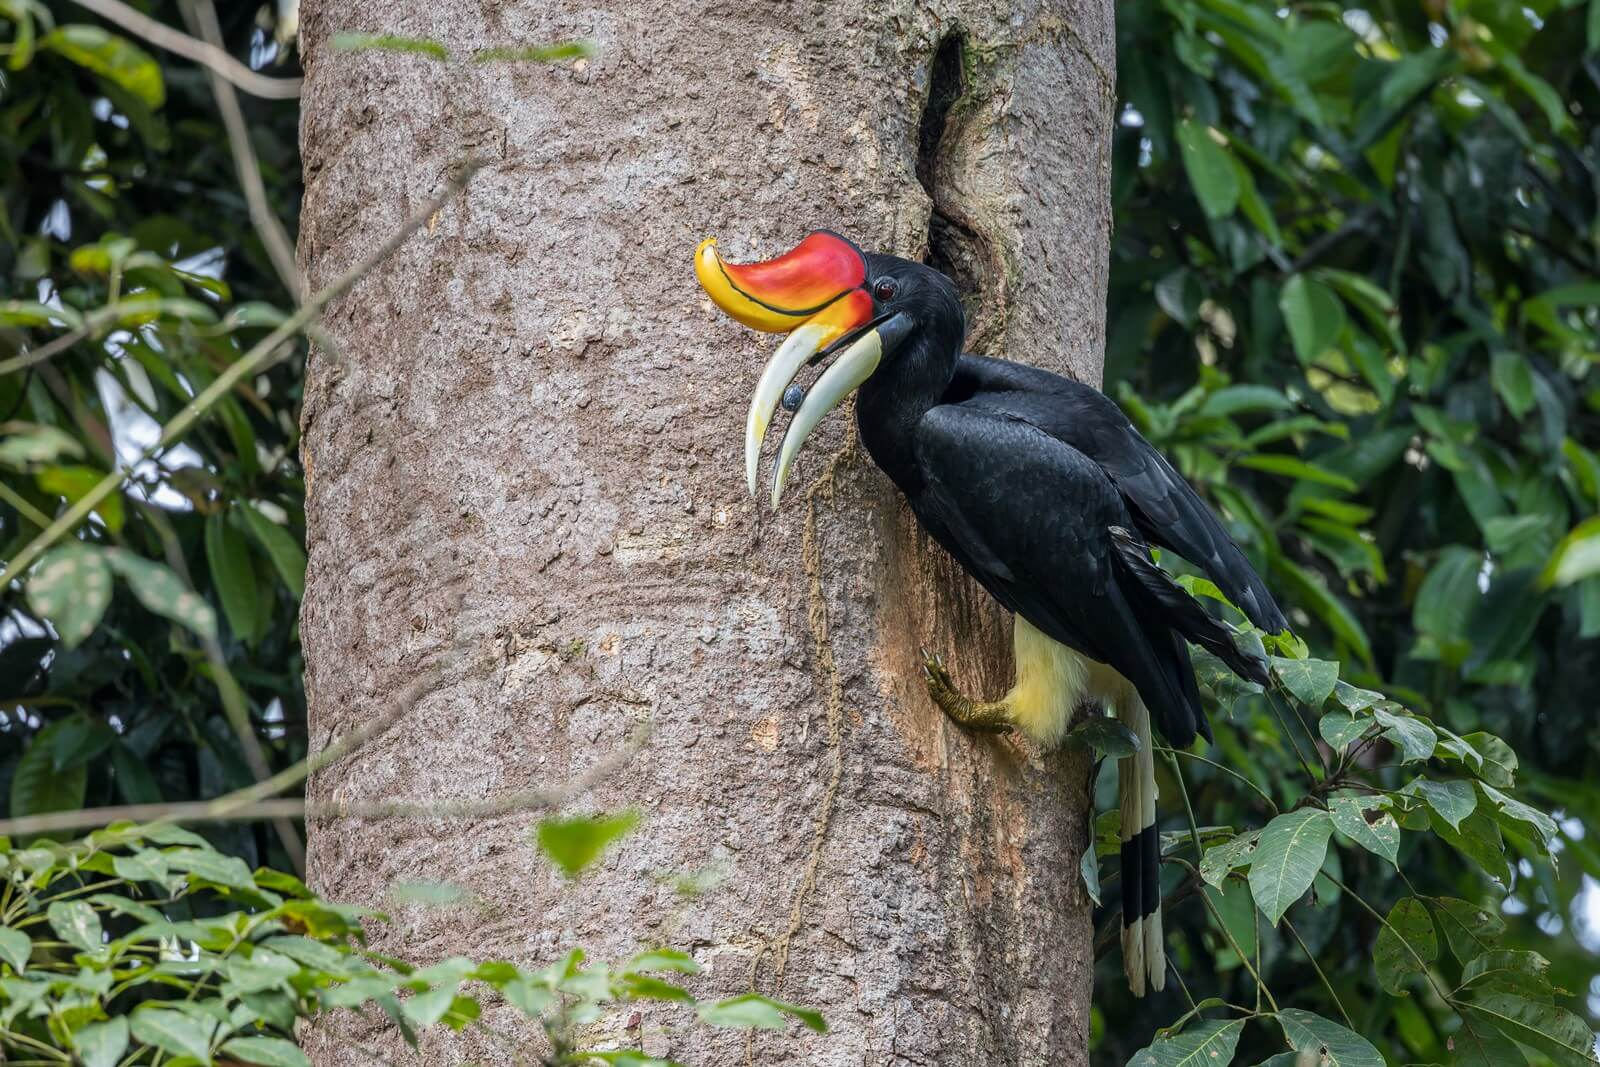 In the Merapoh Forest Complex, a male Rhinoceros Hornbill feeds fruits to its nestling in a tree cavity.